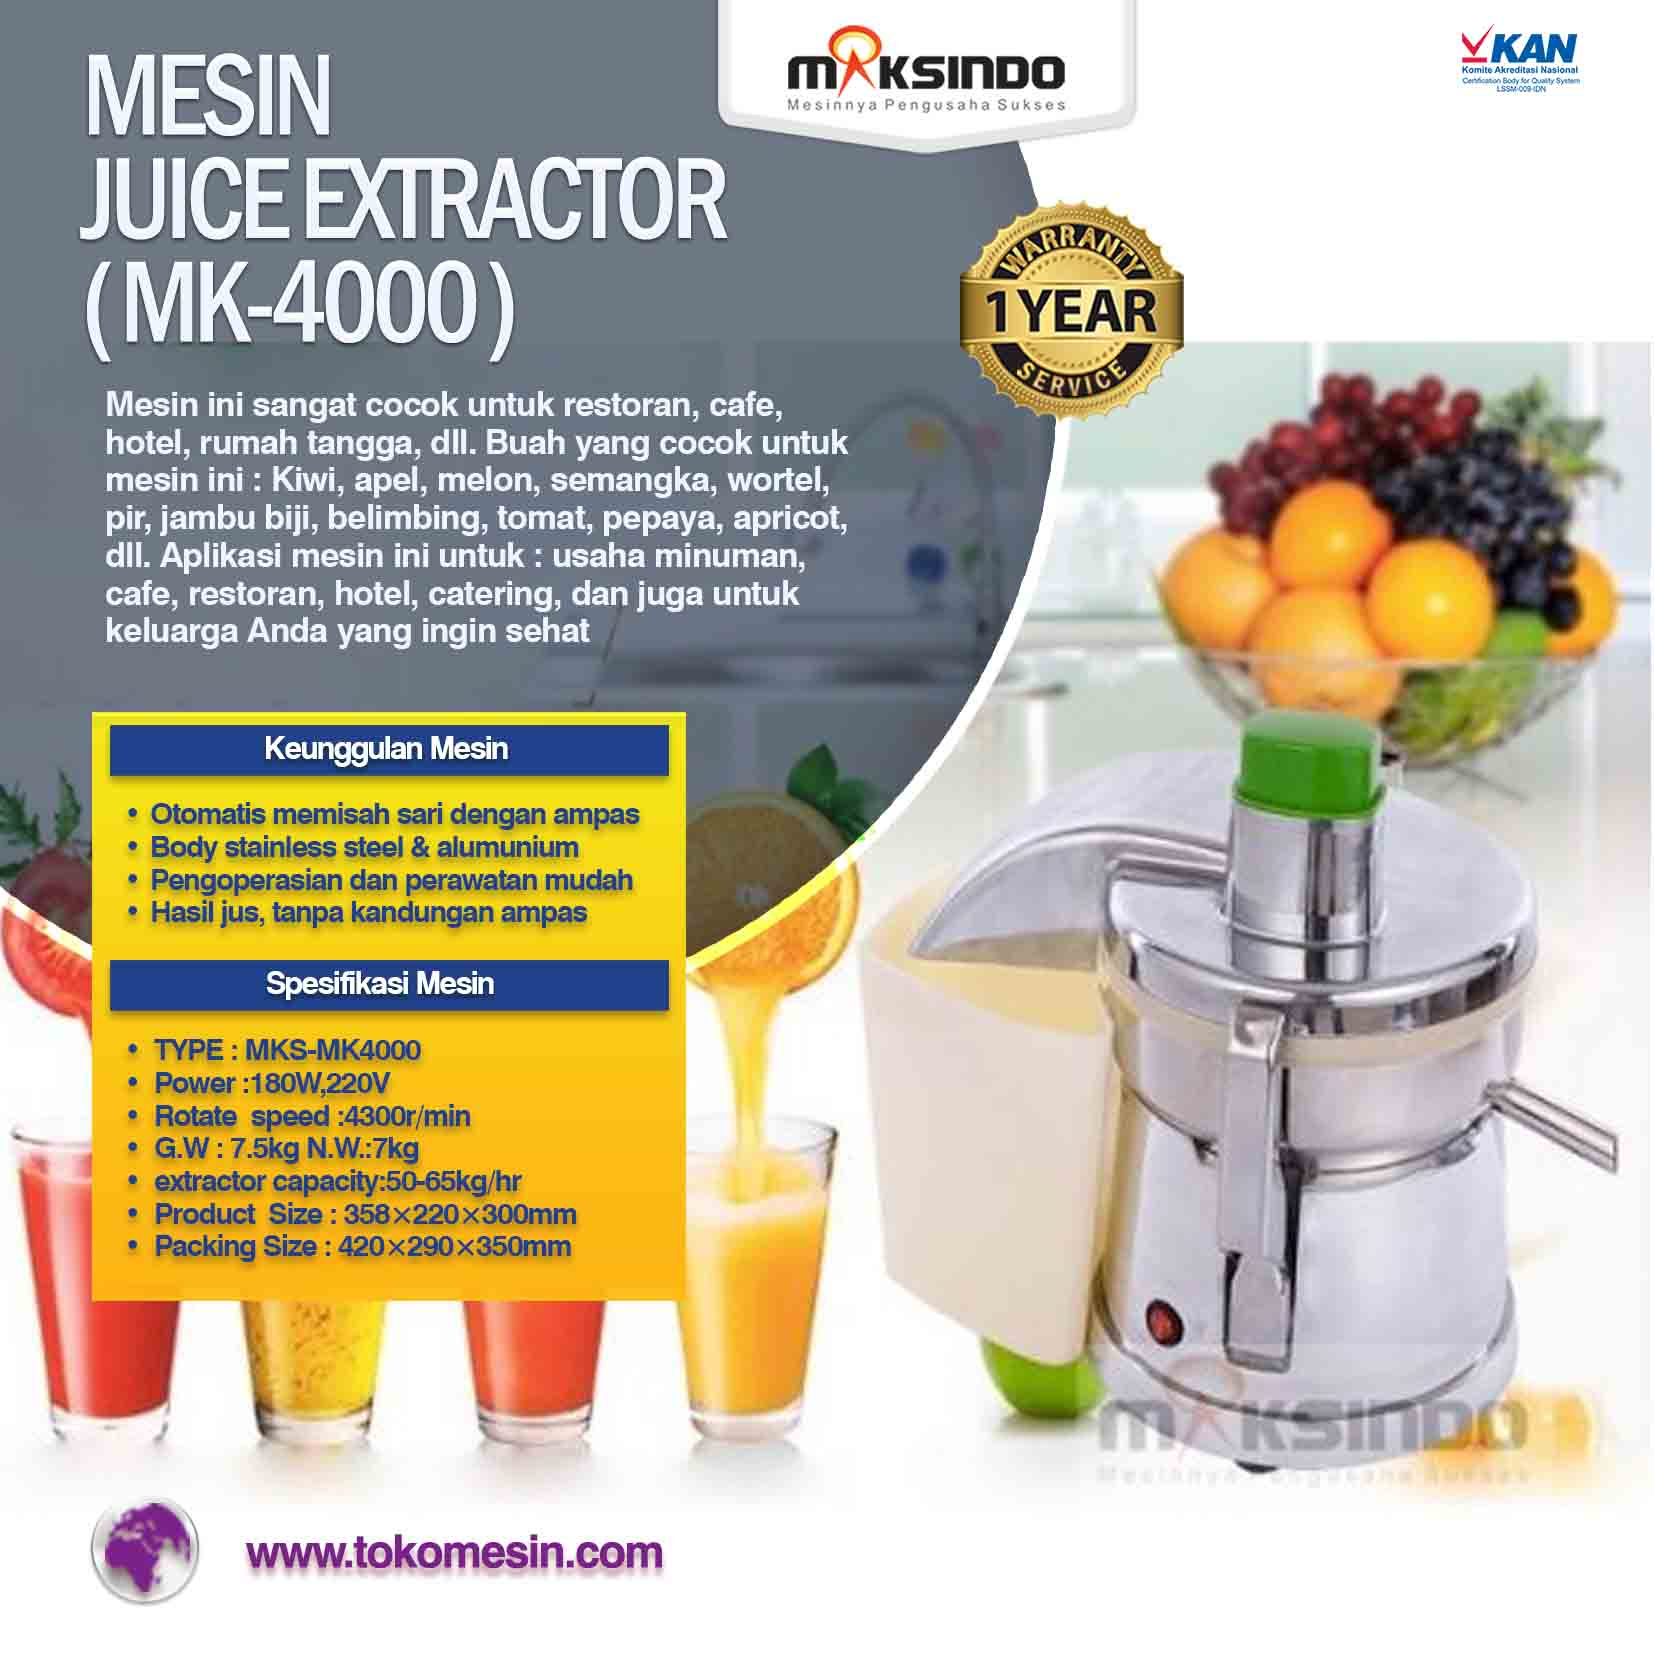 Mesin JUICE EXTRACTOR ( MK-4000 )